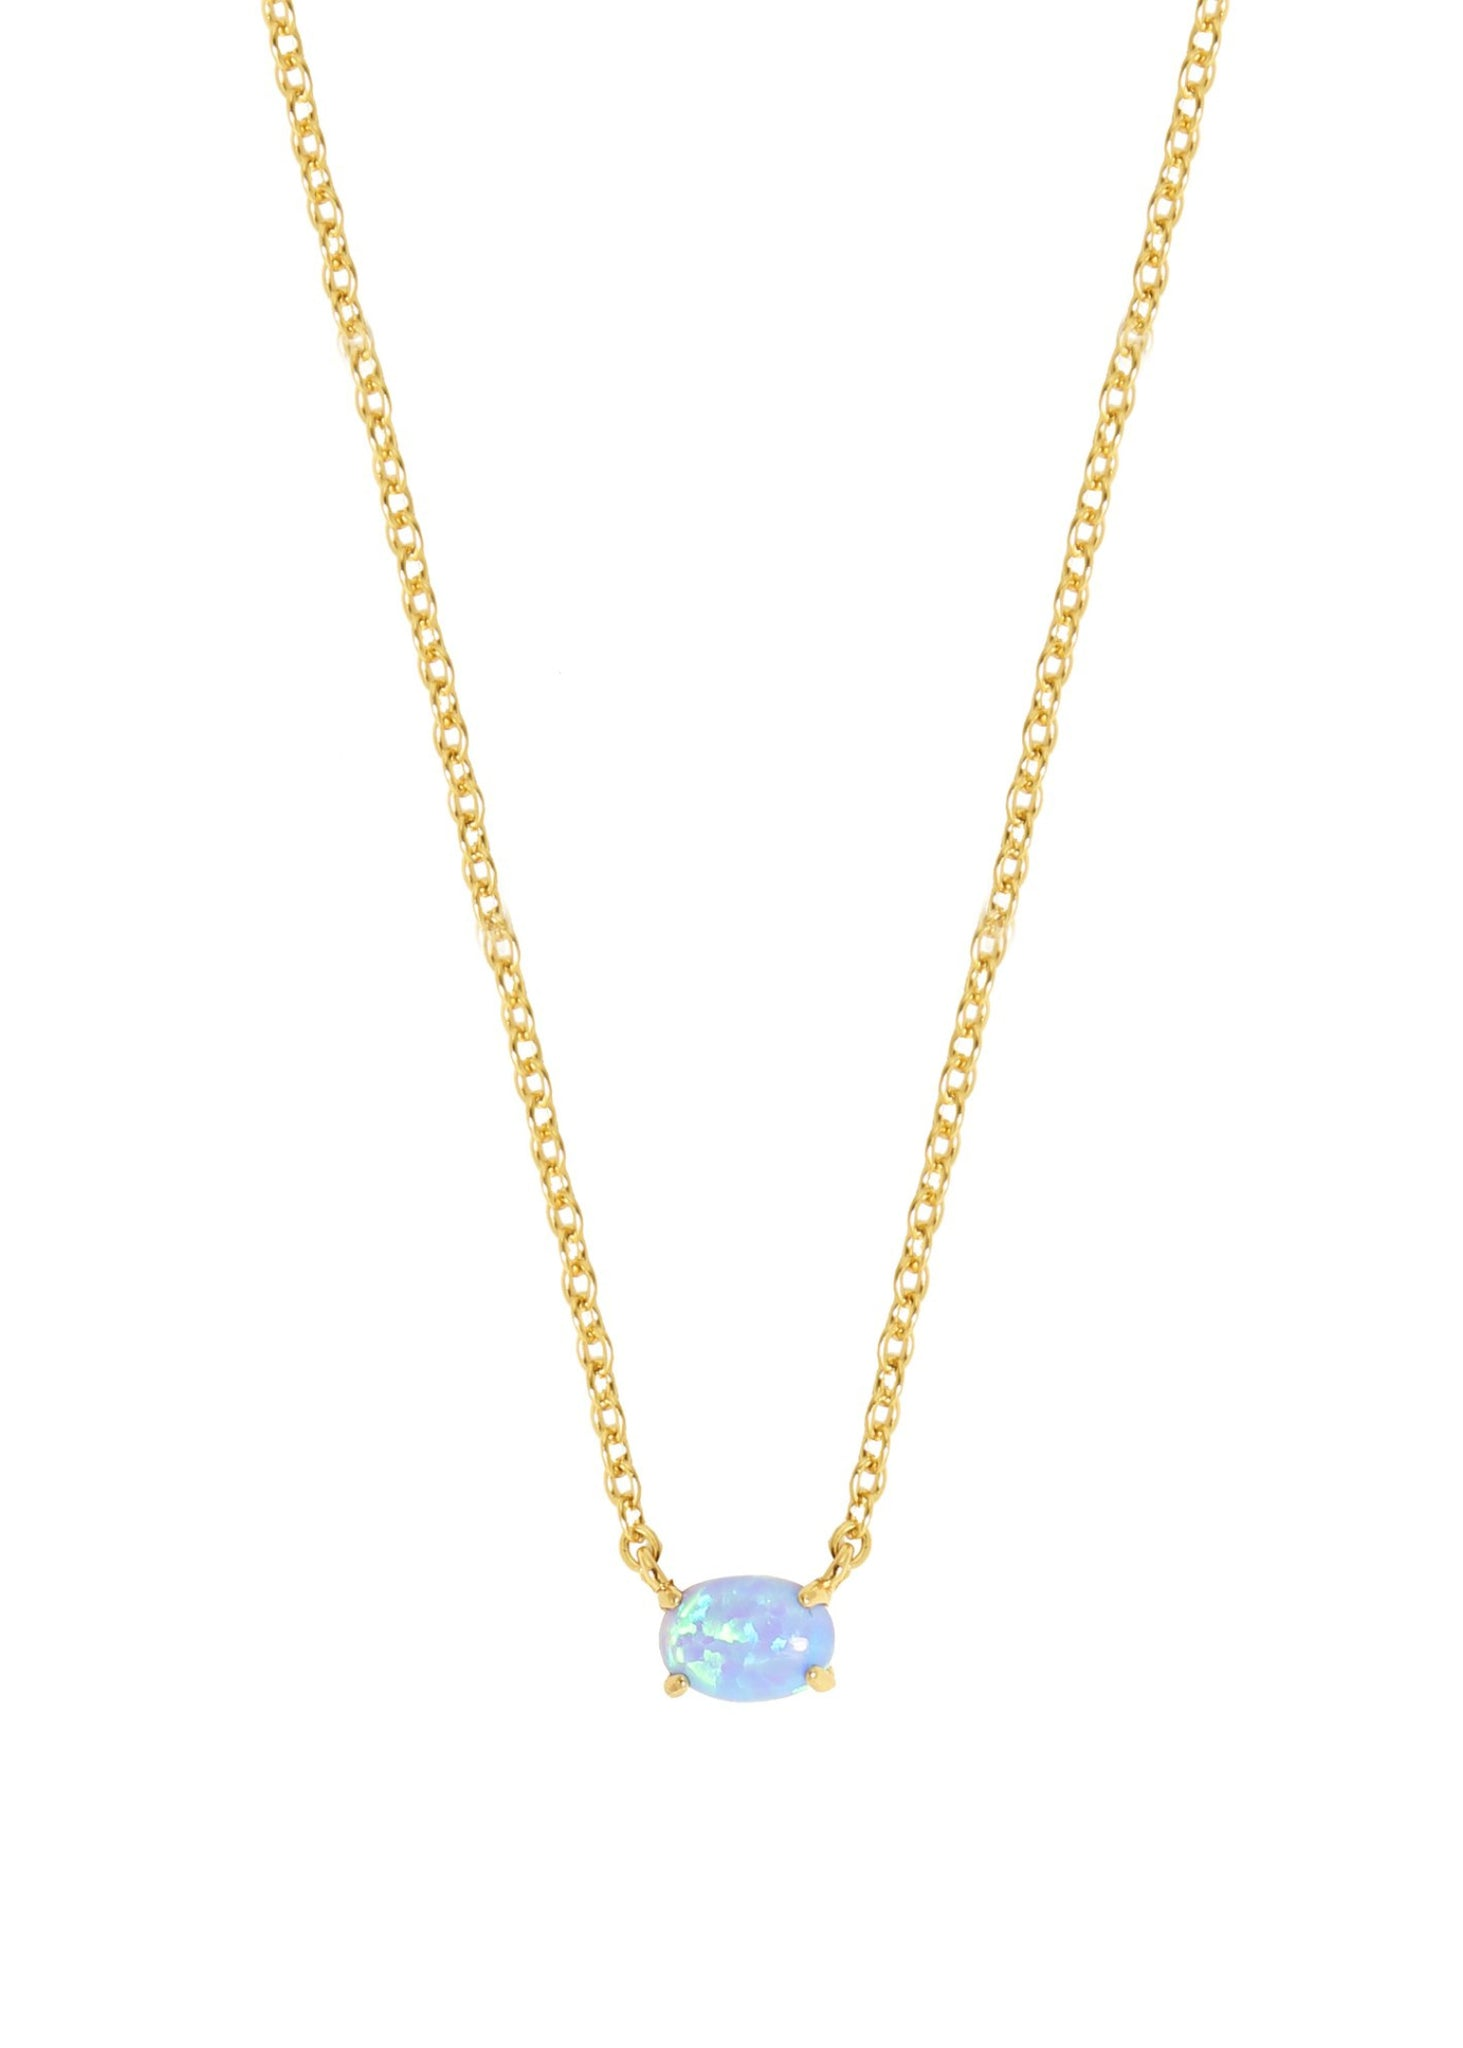 ETTIKA KEEPSAKE KYOCERA BLUE OPAL NECKLACE